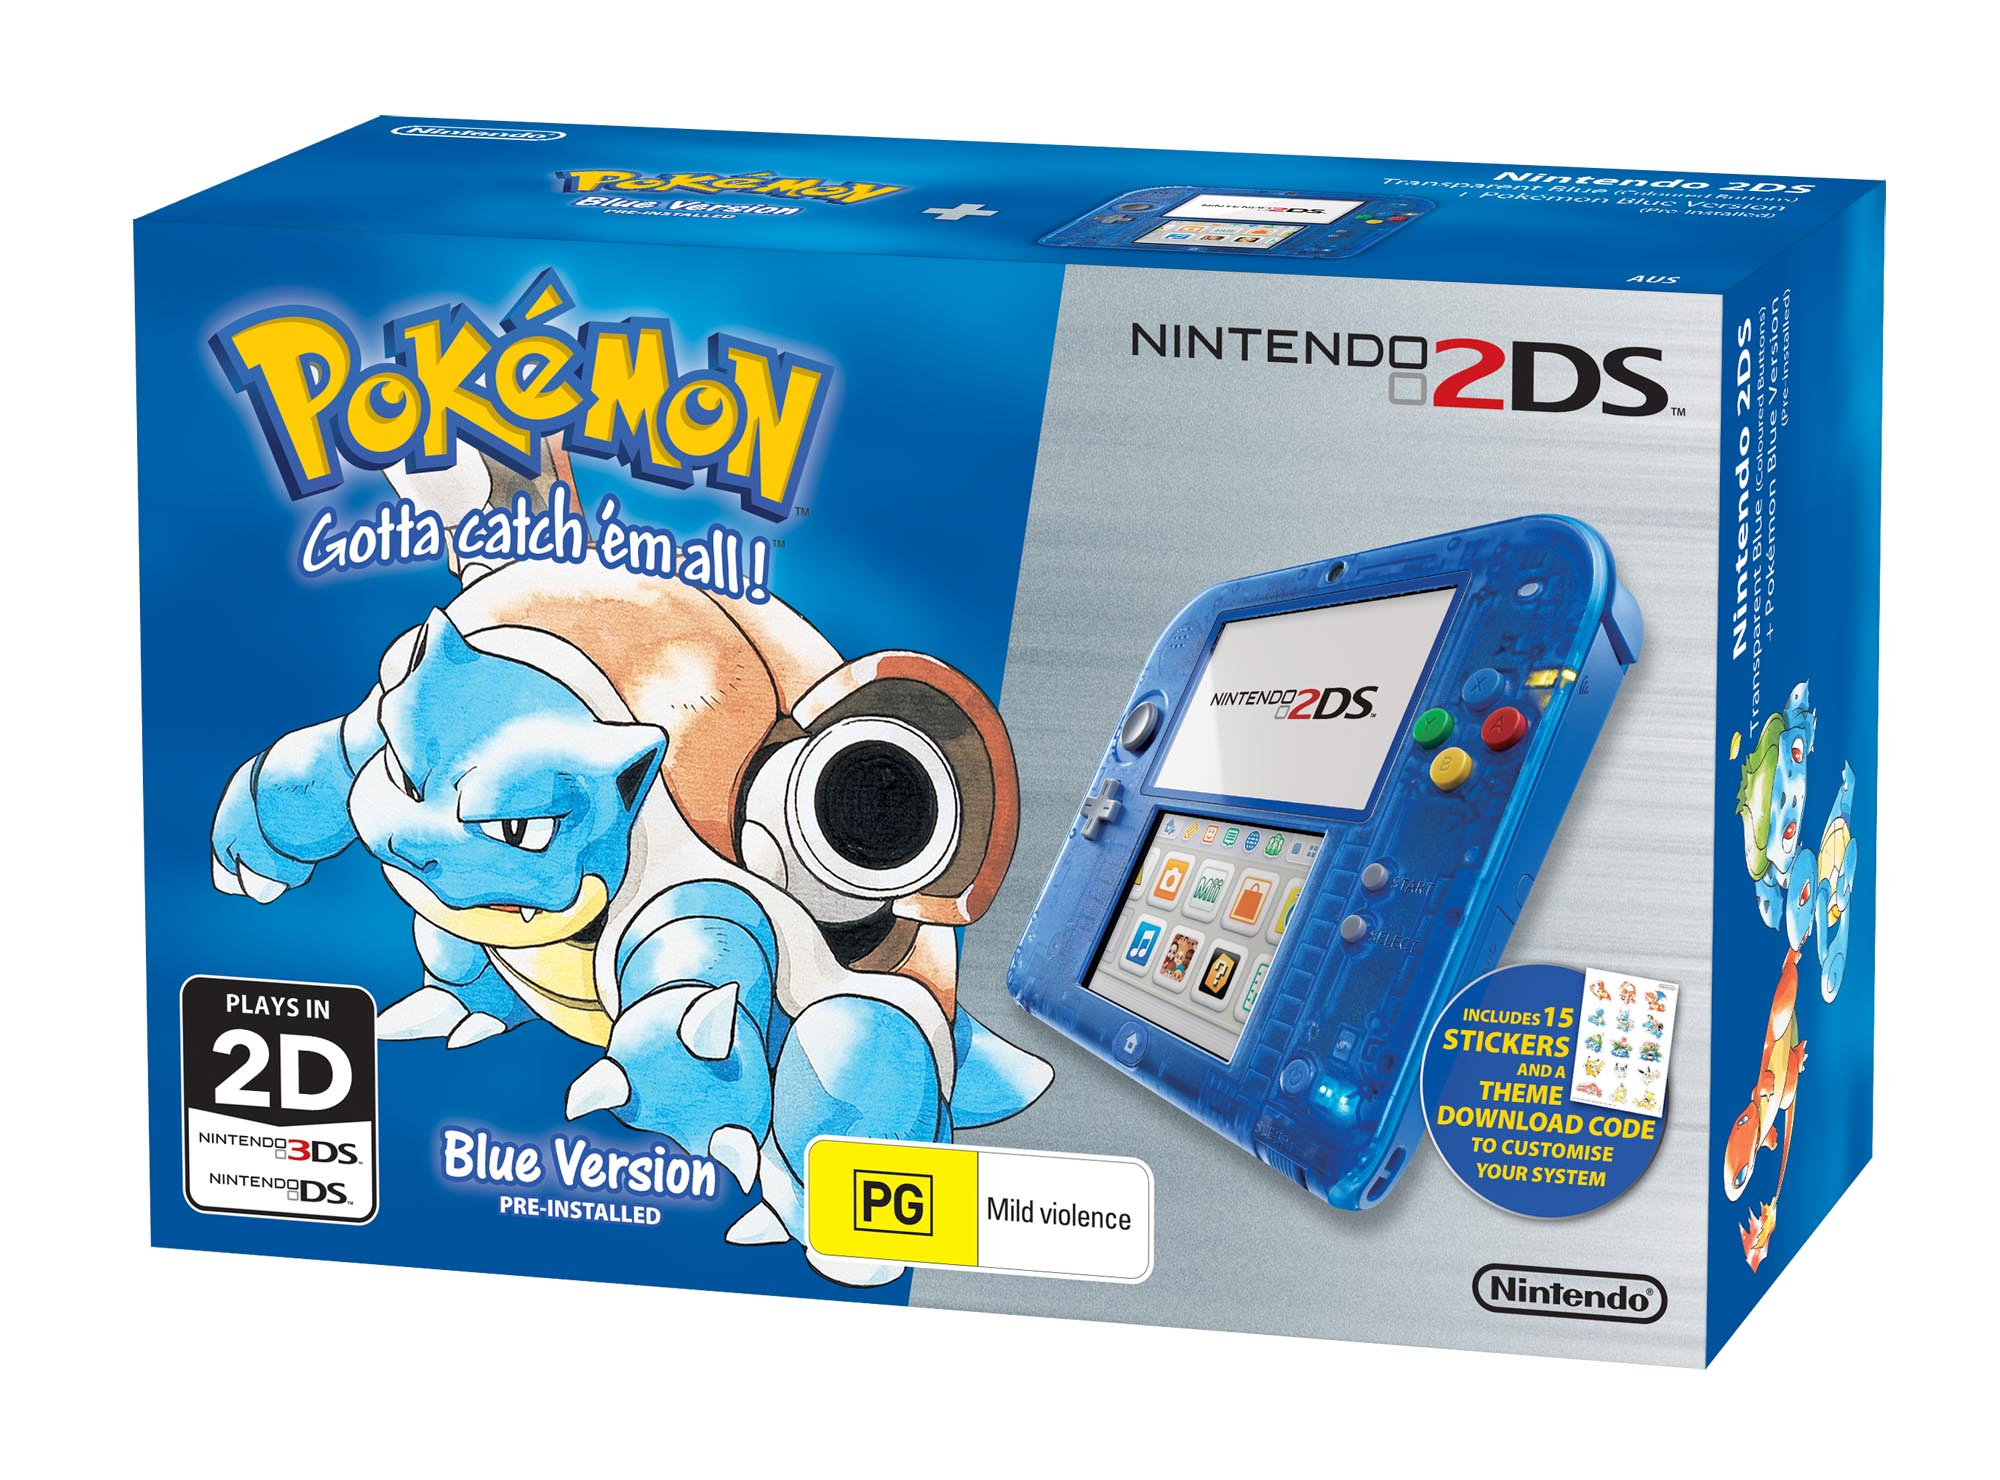 pokemon red blue and yellow bundles set for australian release the bundles will retail for 149 95 and include a virtual console copy of the game stickers and the matching home menu theme